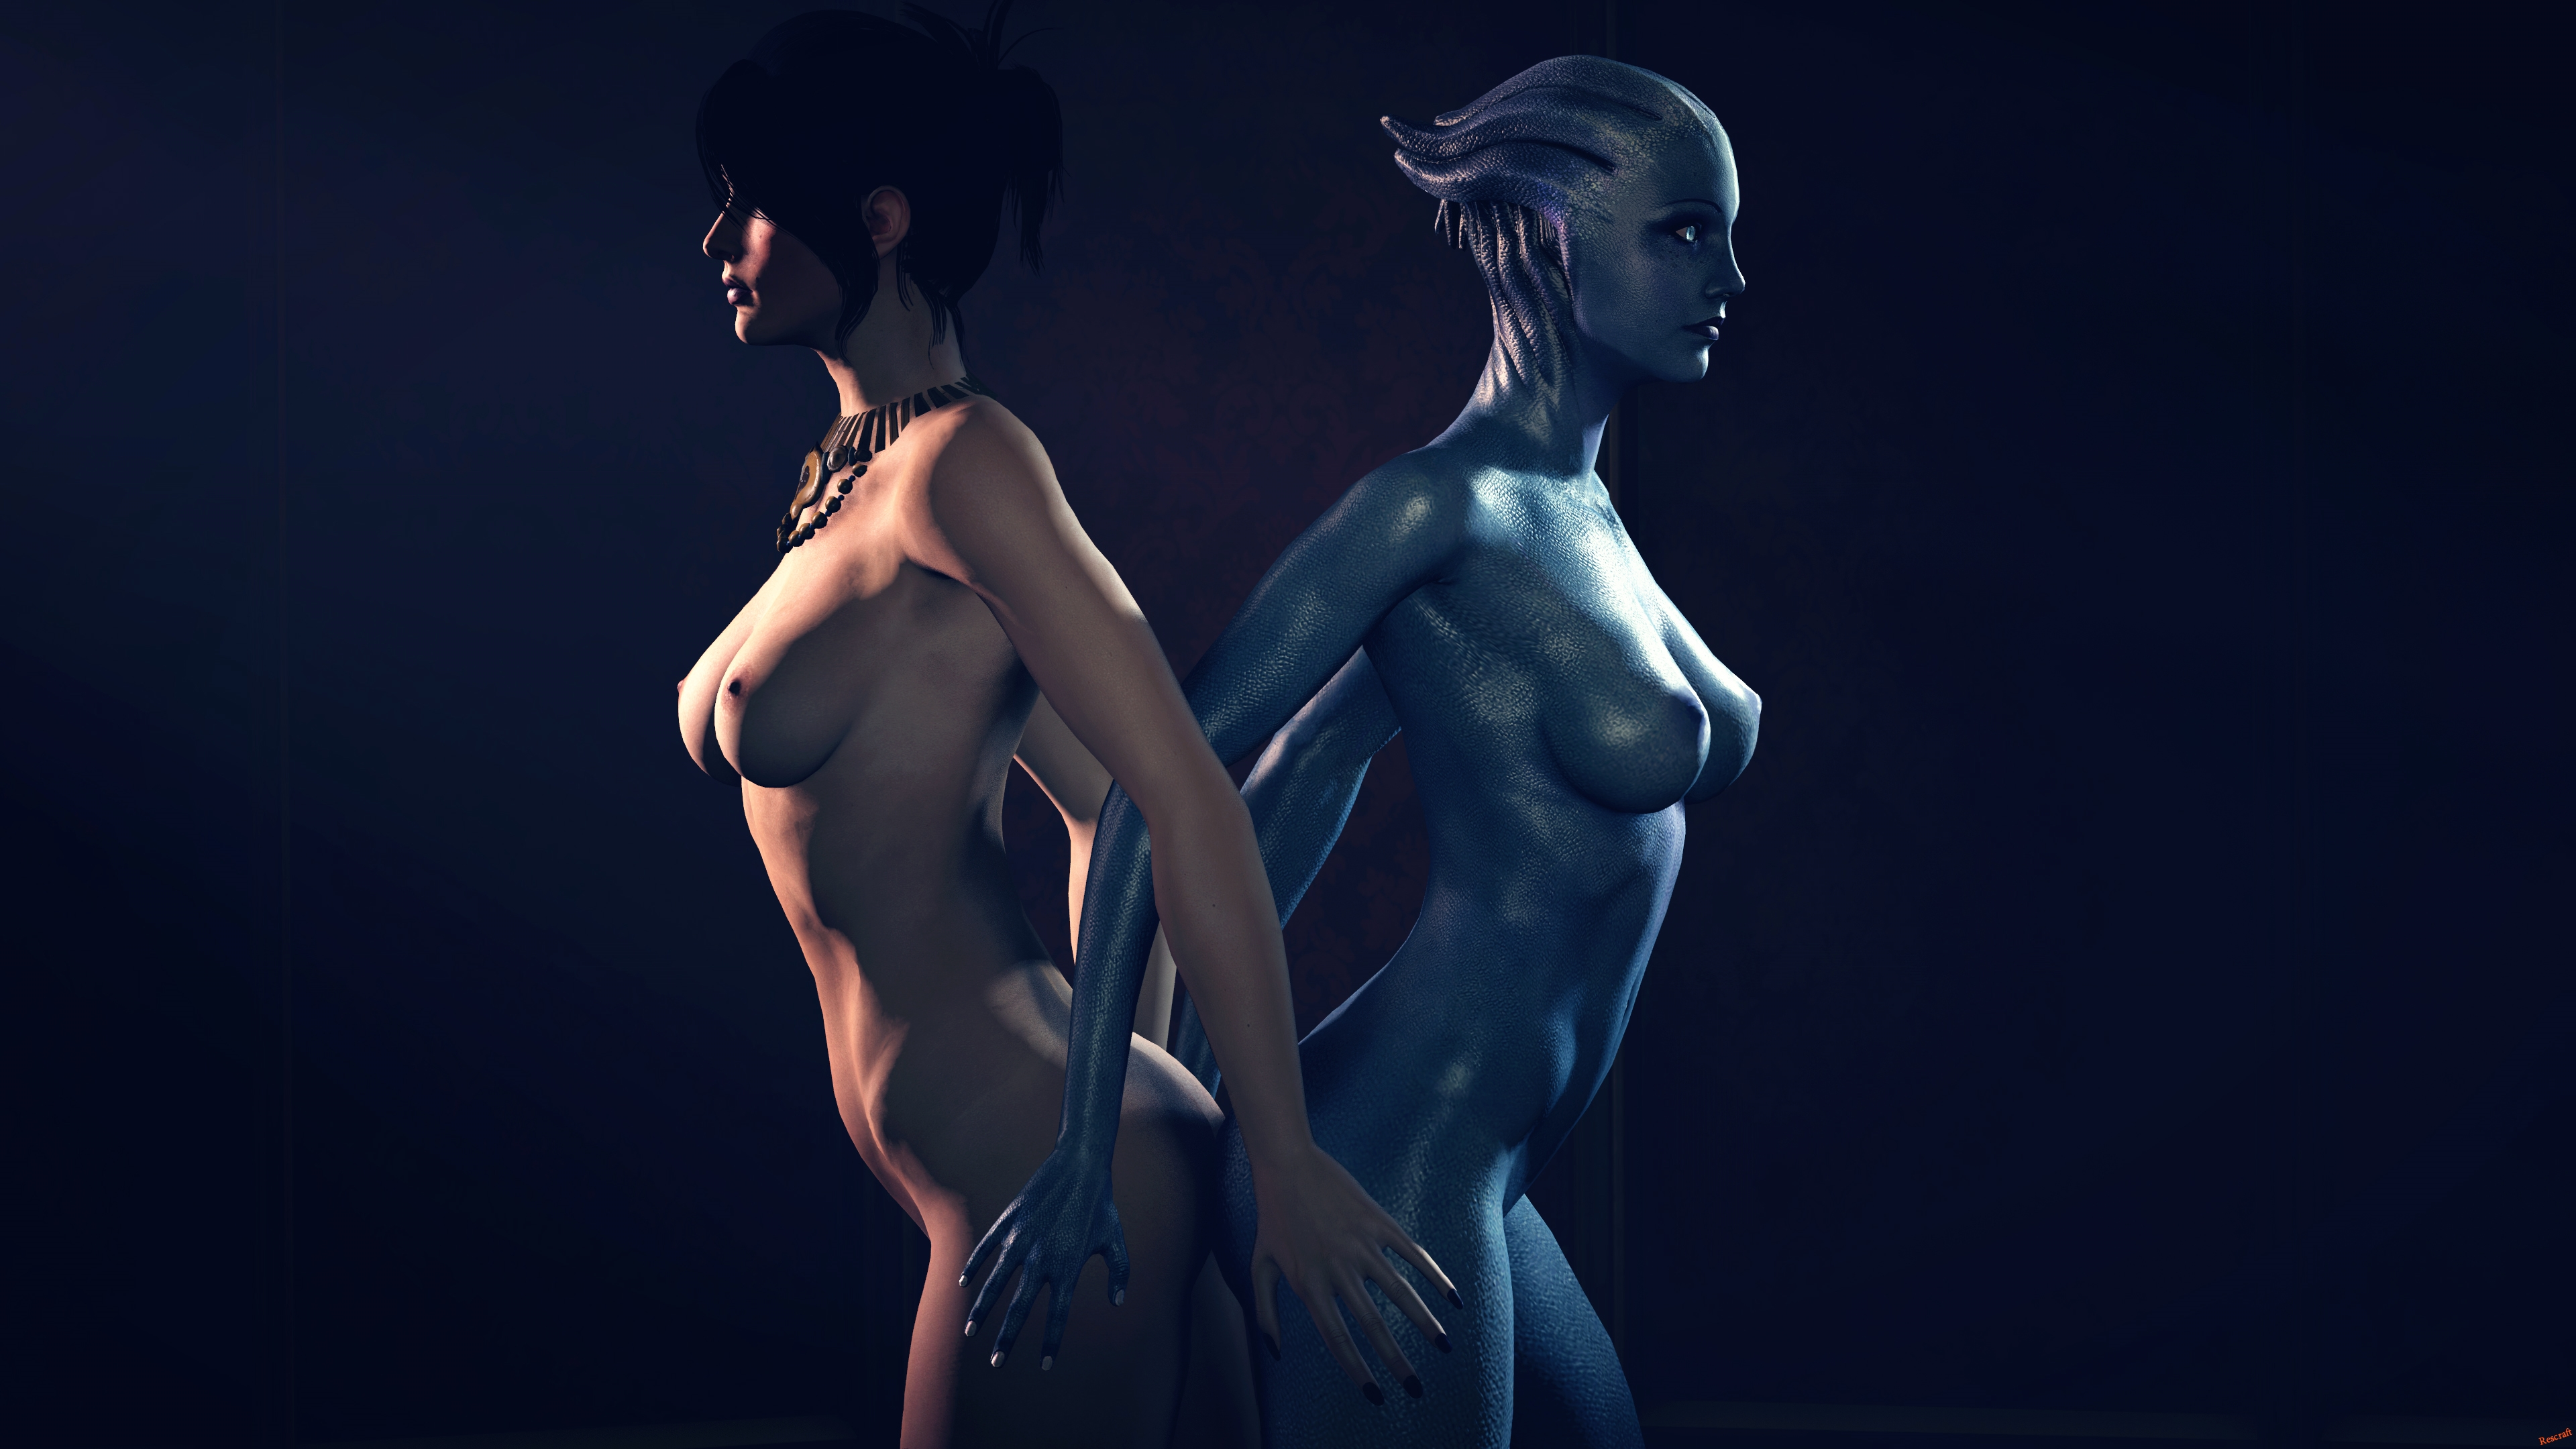 Mass effect liara naked photos hardcore clips